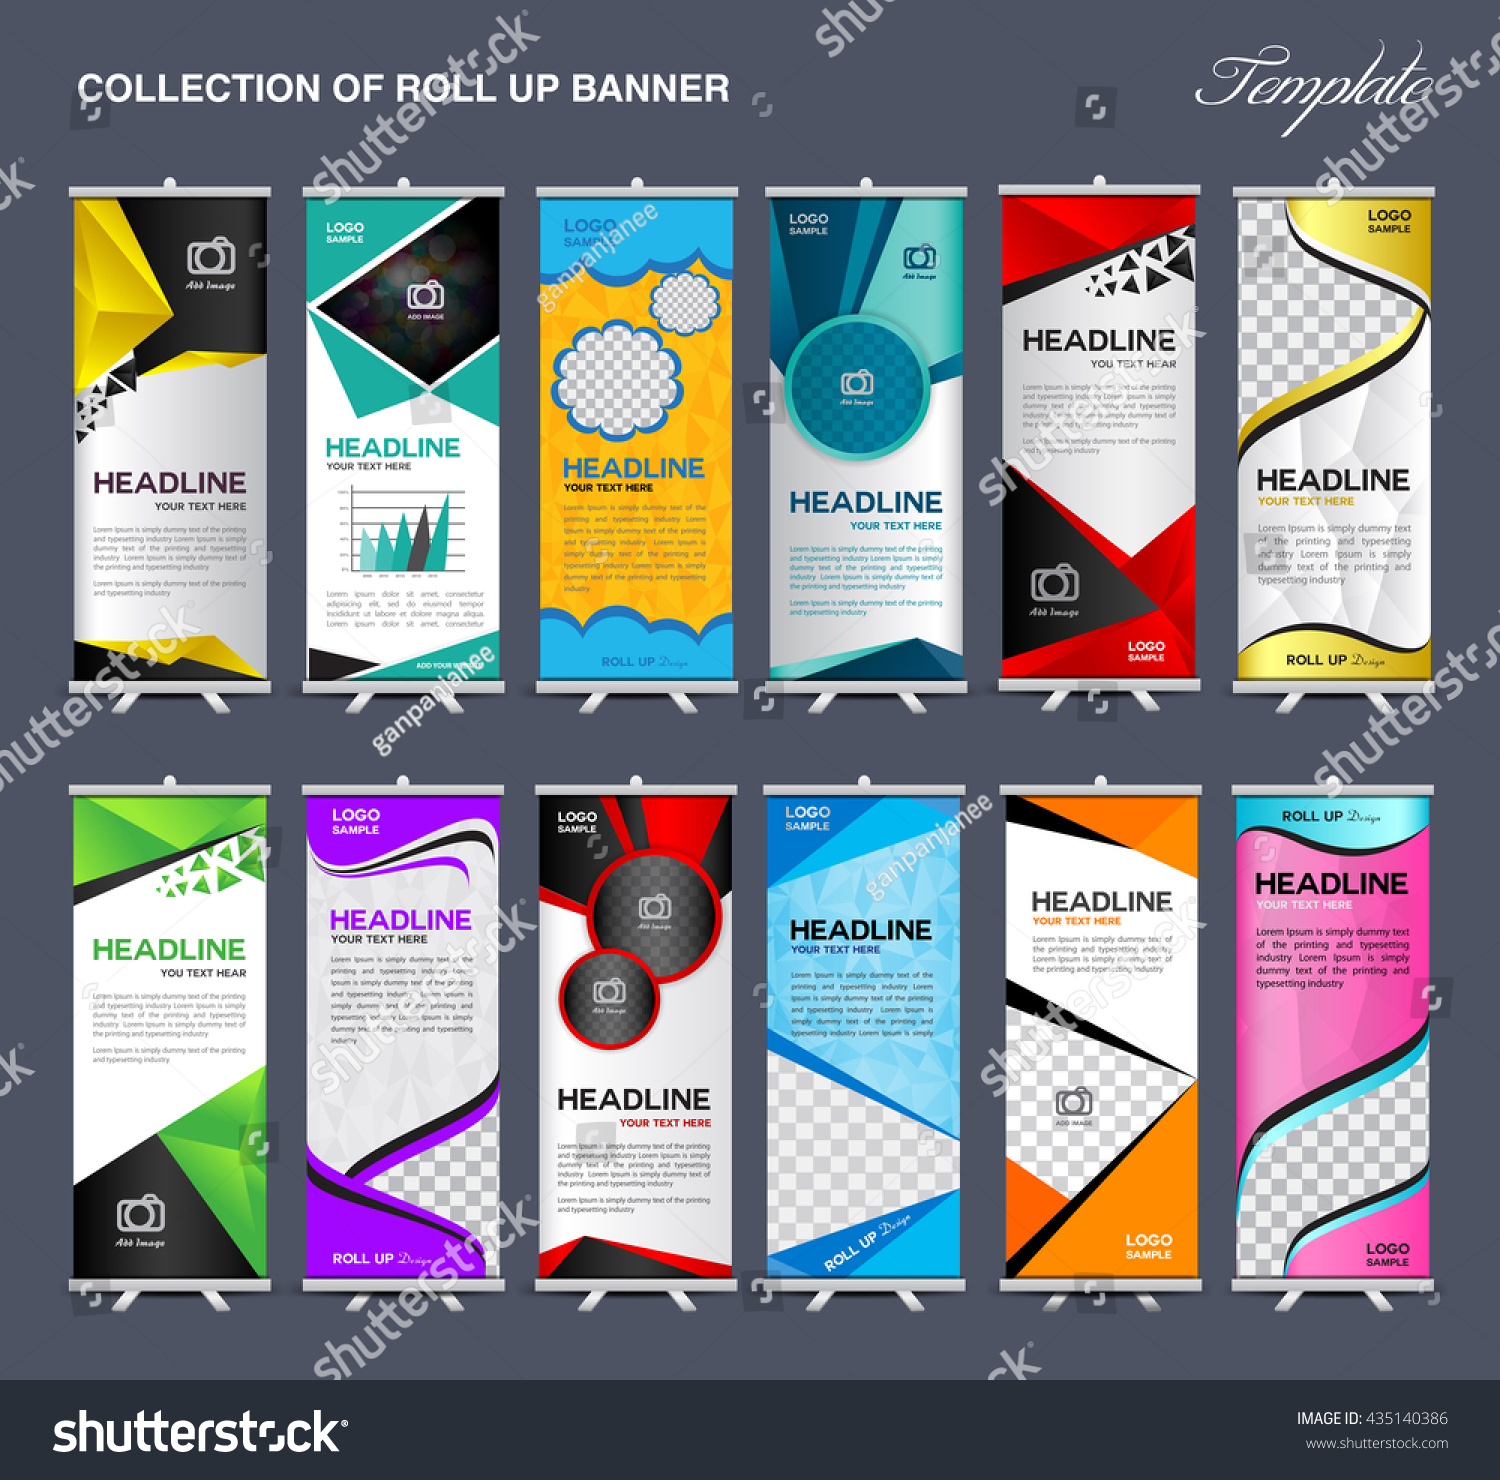 collection of roll up banner design stand template flyer collection of roll up banner design stand template flyer advertisement display layout